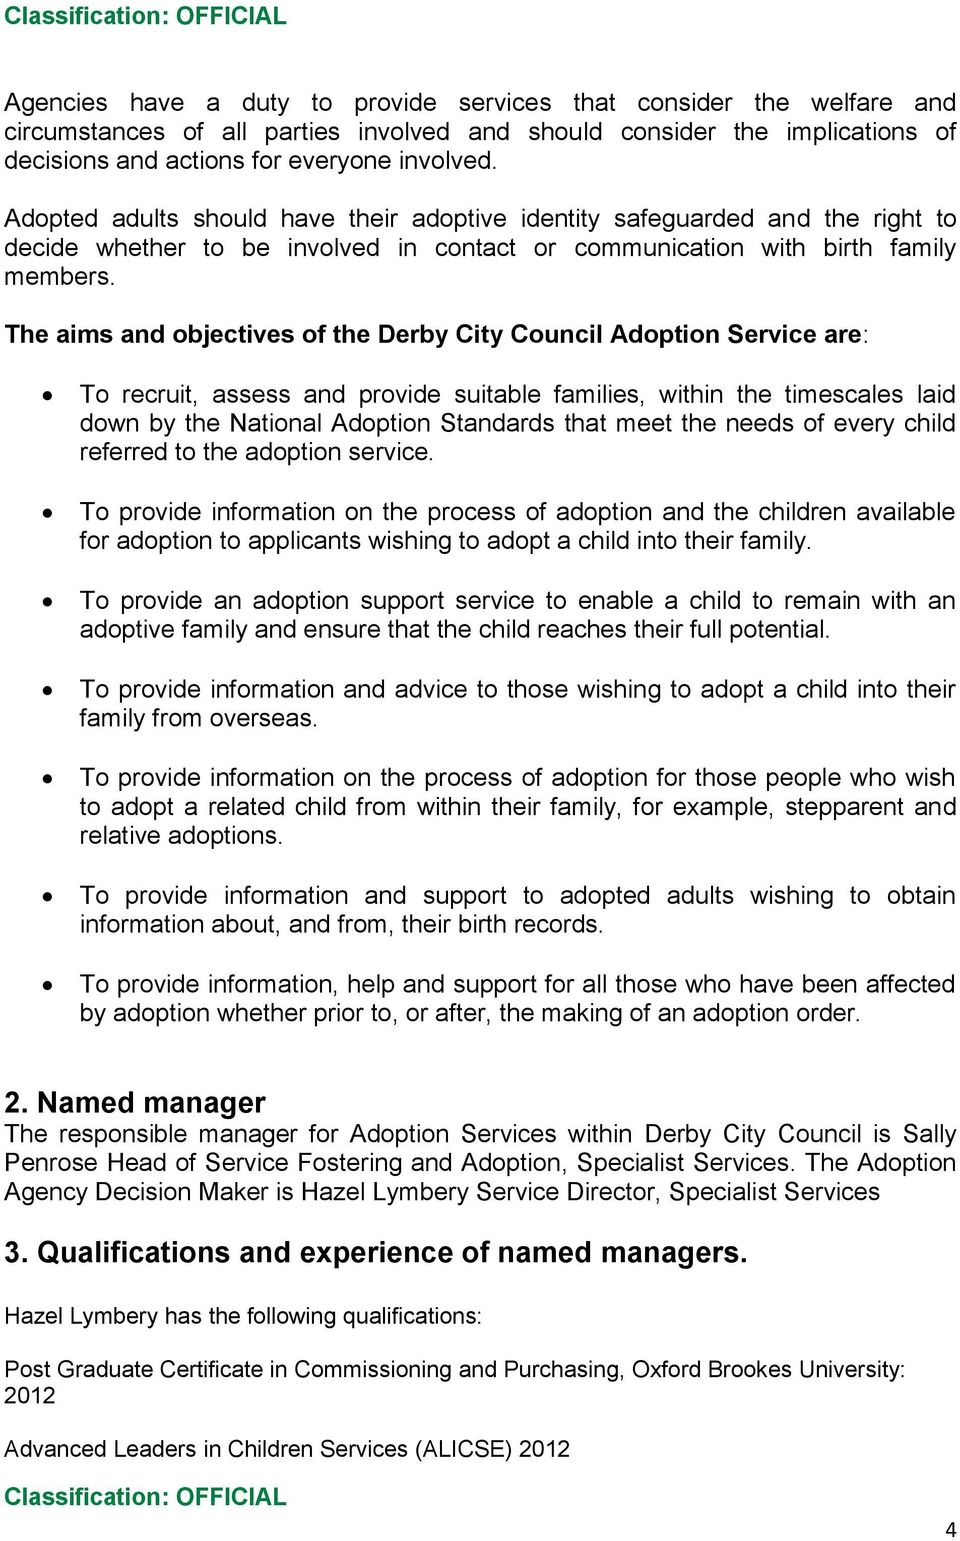 The aims and objectives of the Derby City Council Adoption Service are: To recruit, assess and provide suitable families, within the timescales laid down by the National Adoption Standards that meet